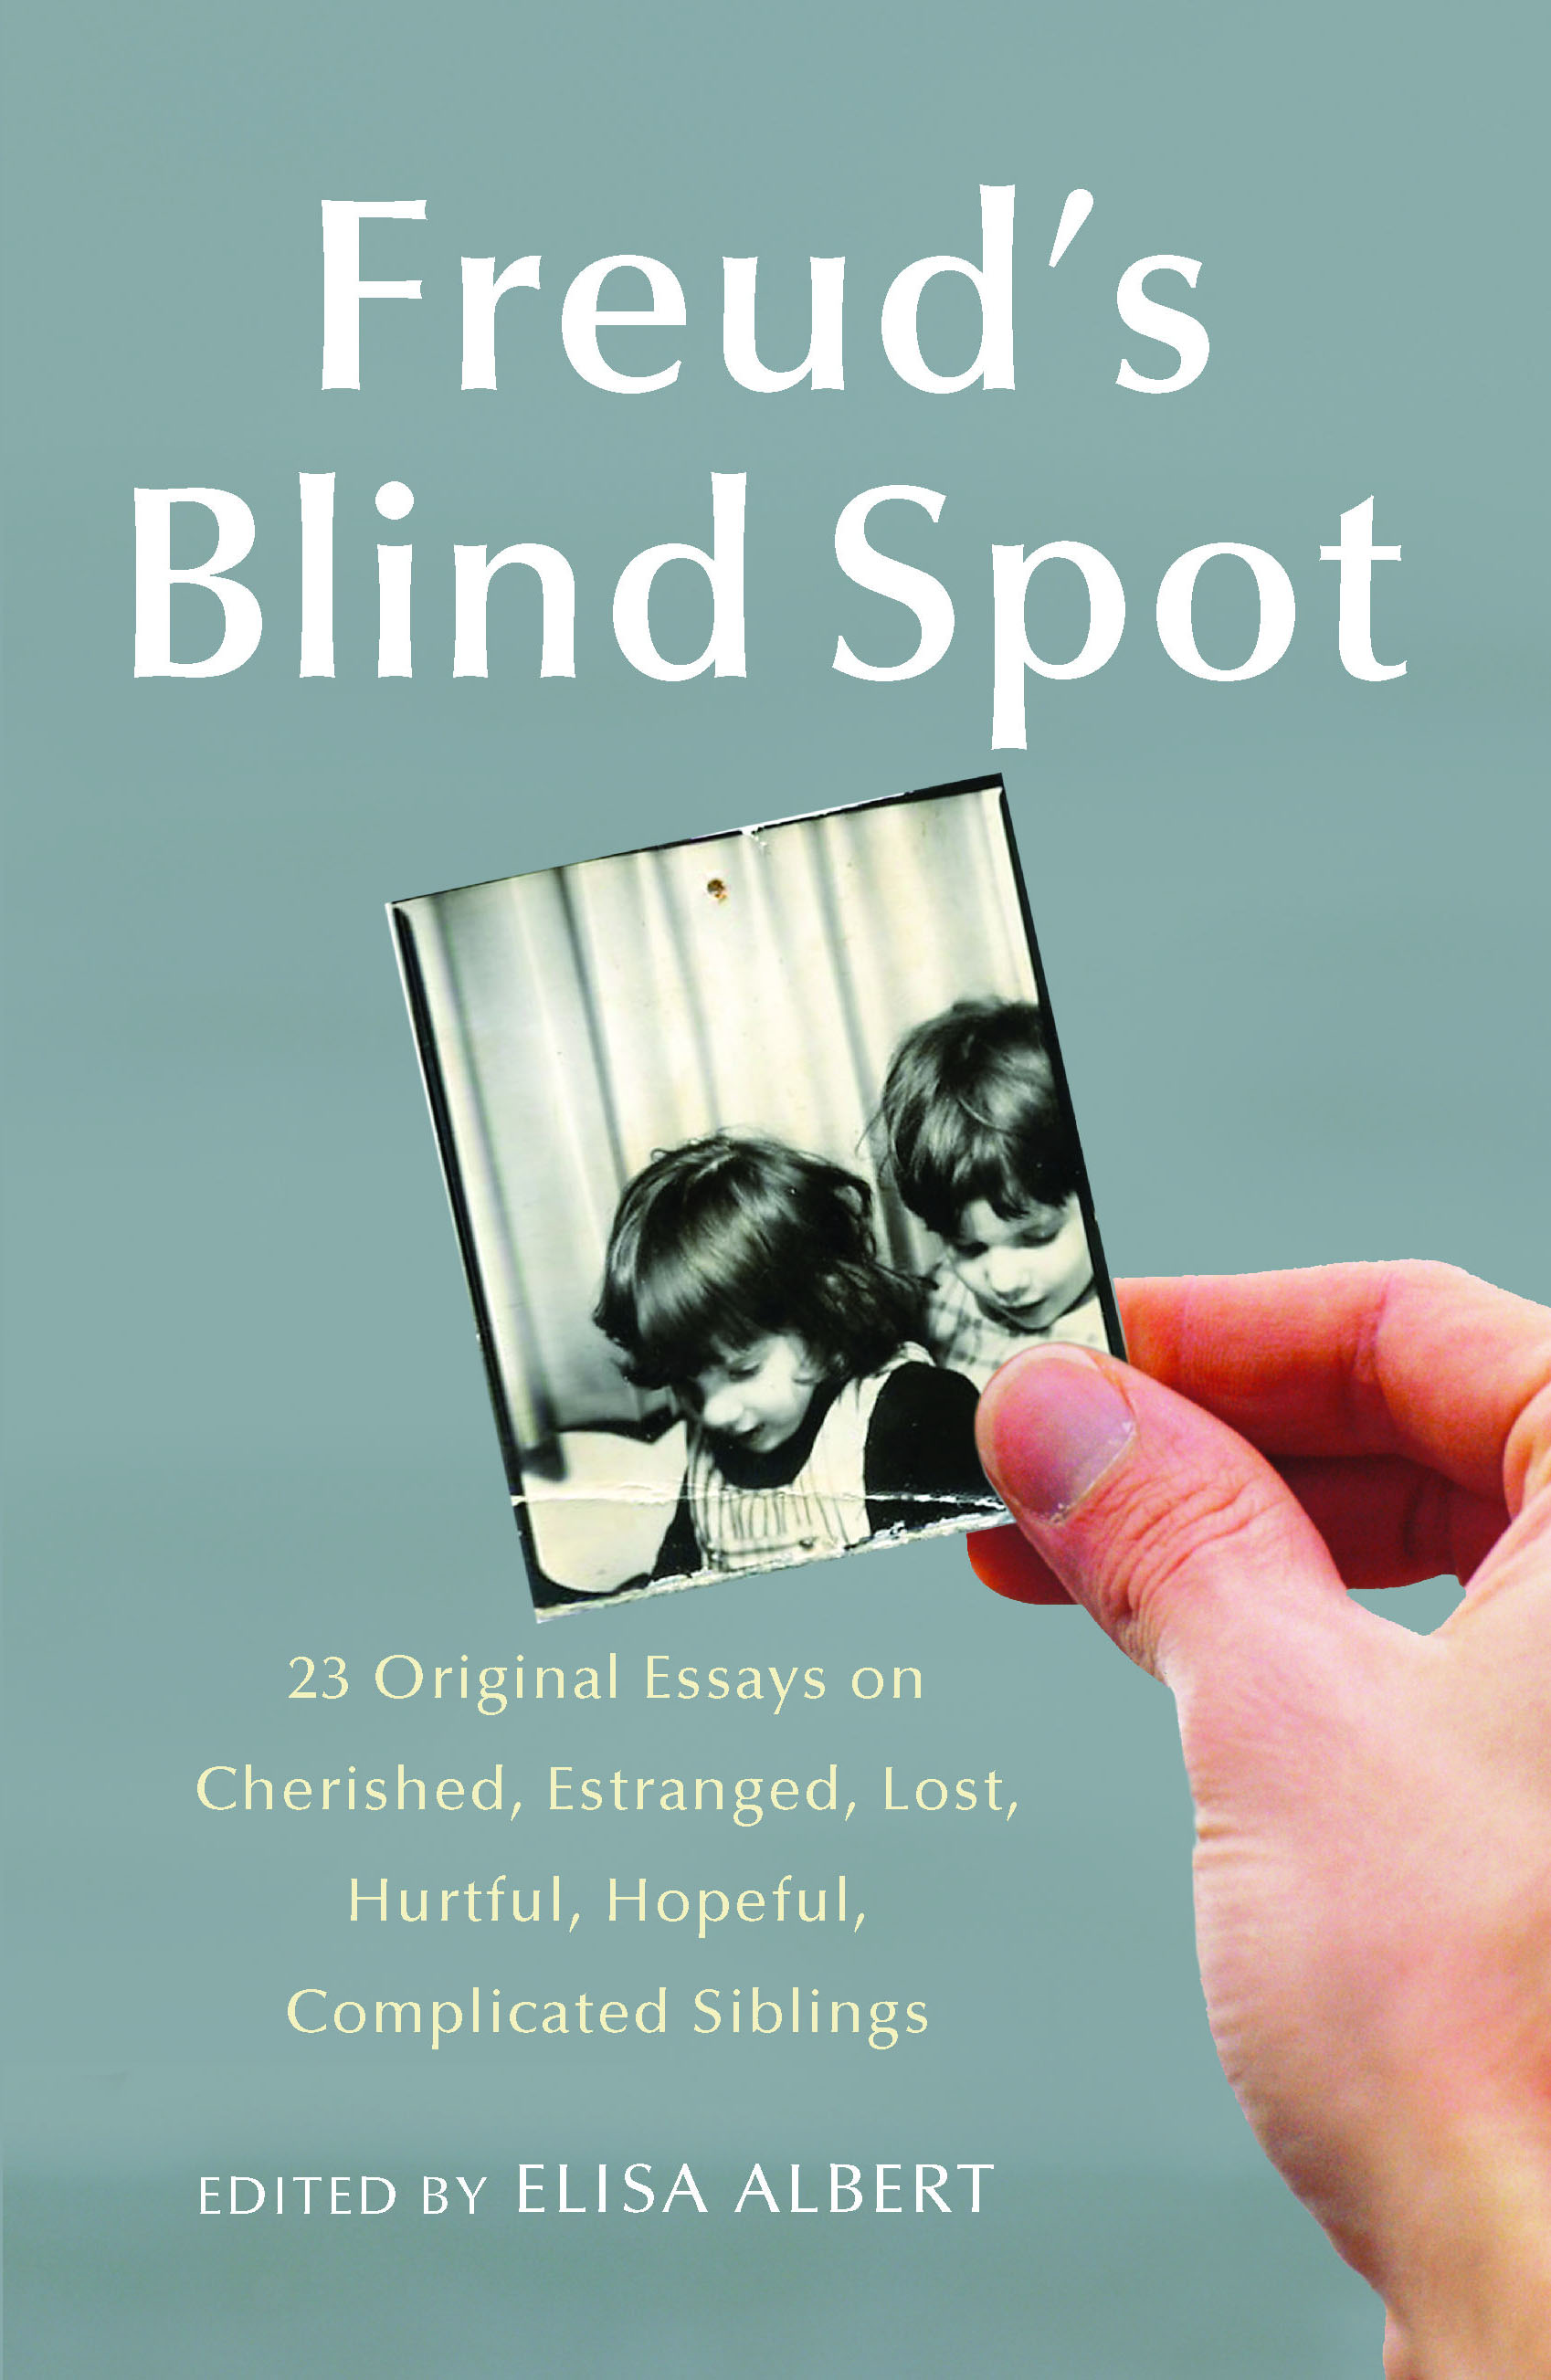 freud s blind spot book by elisa albert official publisher 23 original essays on cherished estranged lost hurtful hopeful complicated siblings freud s blind spot